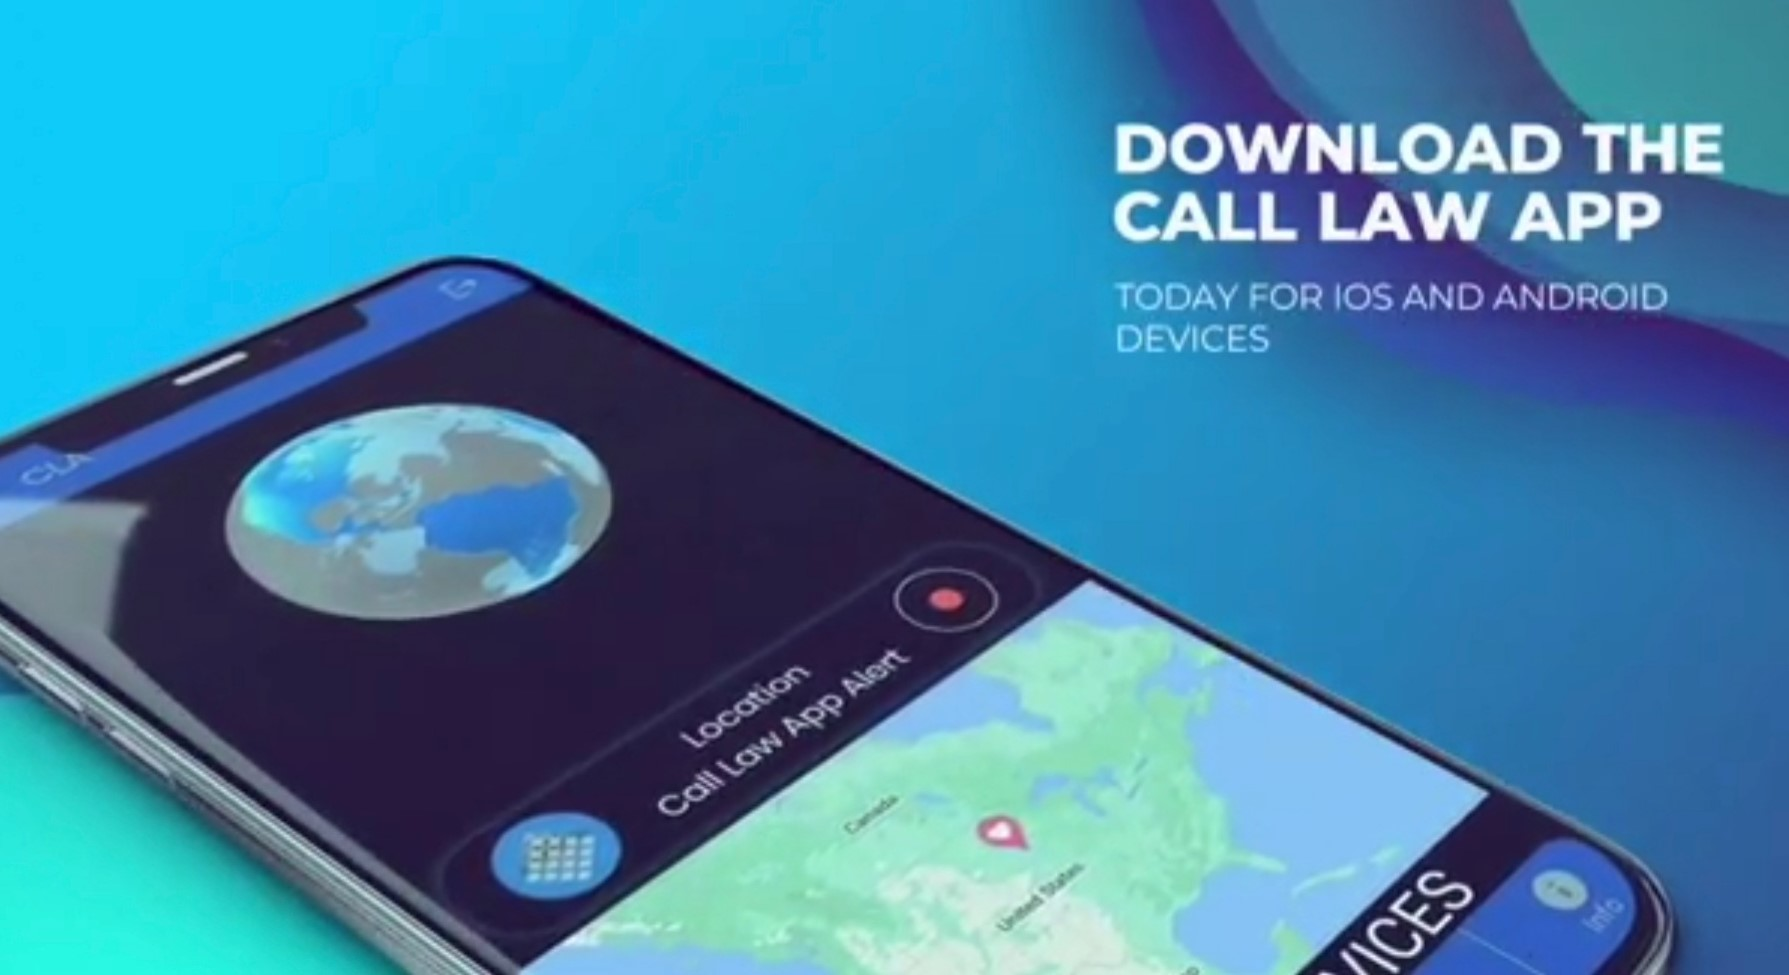 CALL LAW APP Version 2.0 Available for IOS and Android